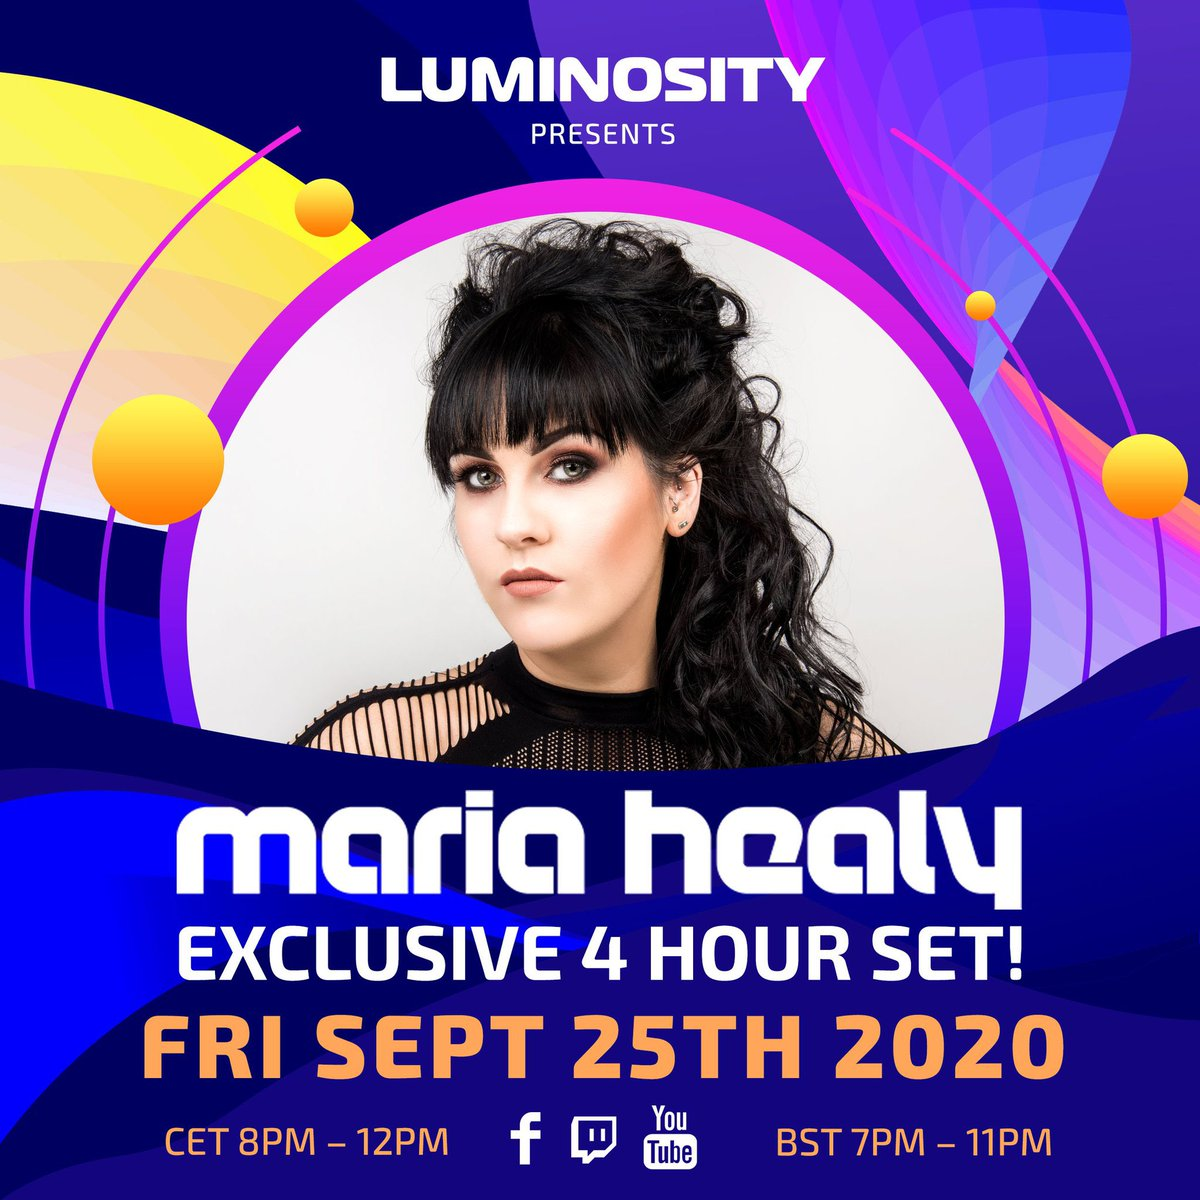 This Friday, catch my 4 hour stream for @LuminosityEvent It's jam packed with lots of gems 💎 https://t.co/vqfDNUSgt7